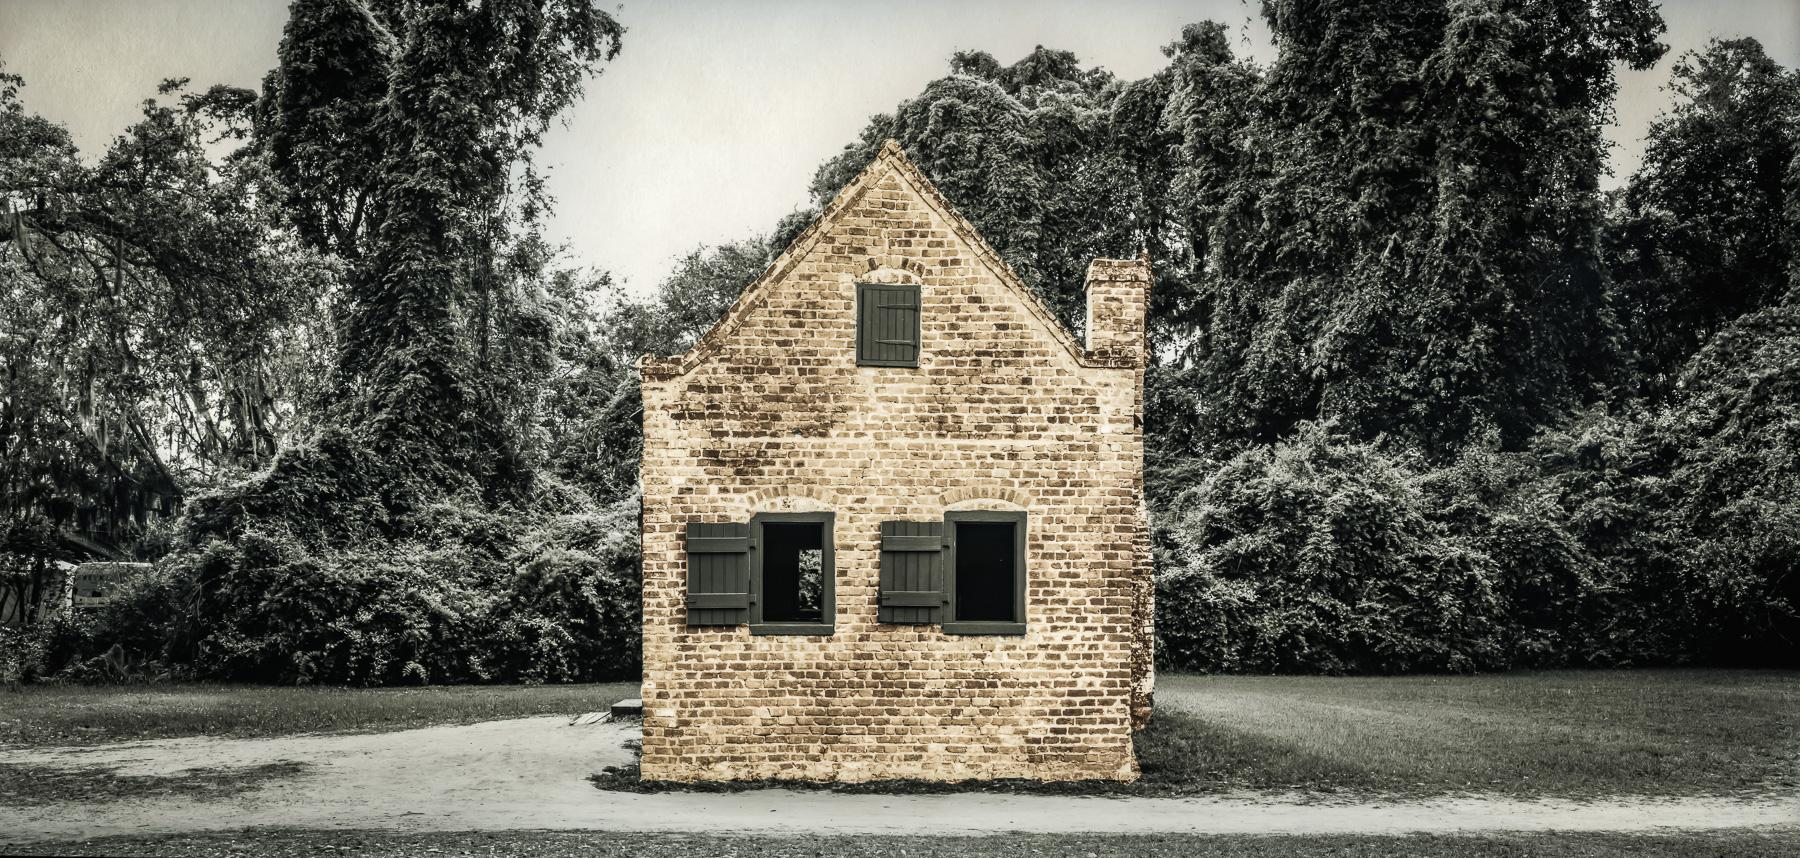 "Slave Dwelling No. 46: Boone Hall Plantation, South Carolina Silver gelatin photograph handprinted from an 8x16"" film negative. The slave cabin was painted with toners to illuminate the structure. To purchase a limited edition photograph click"